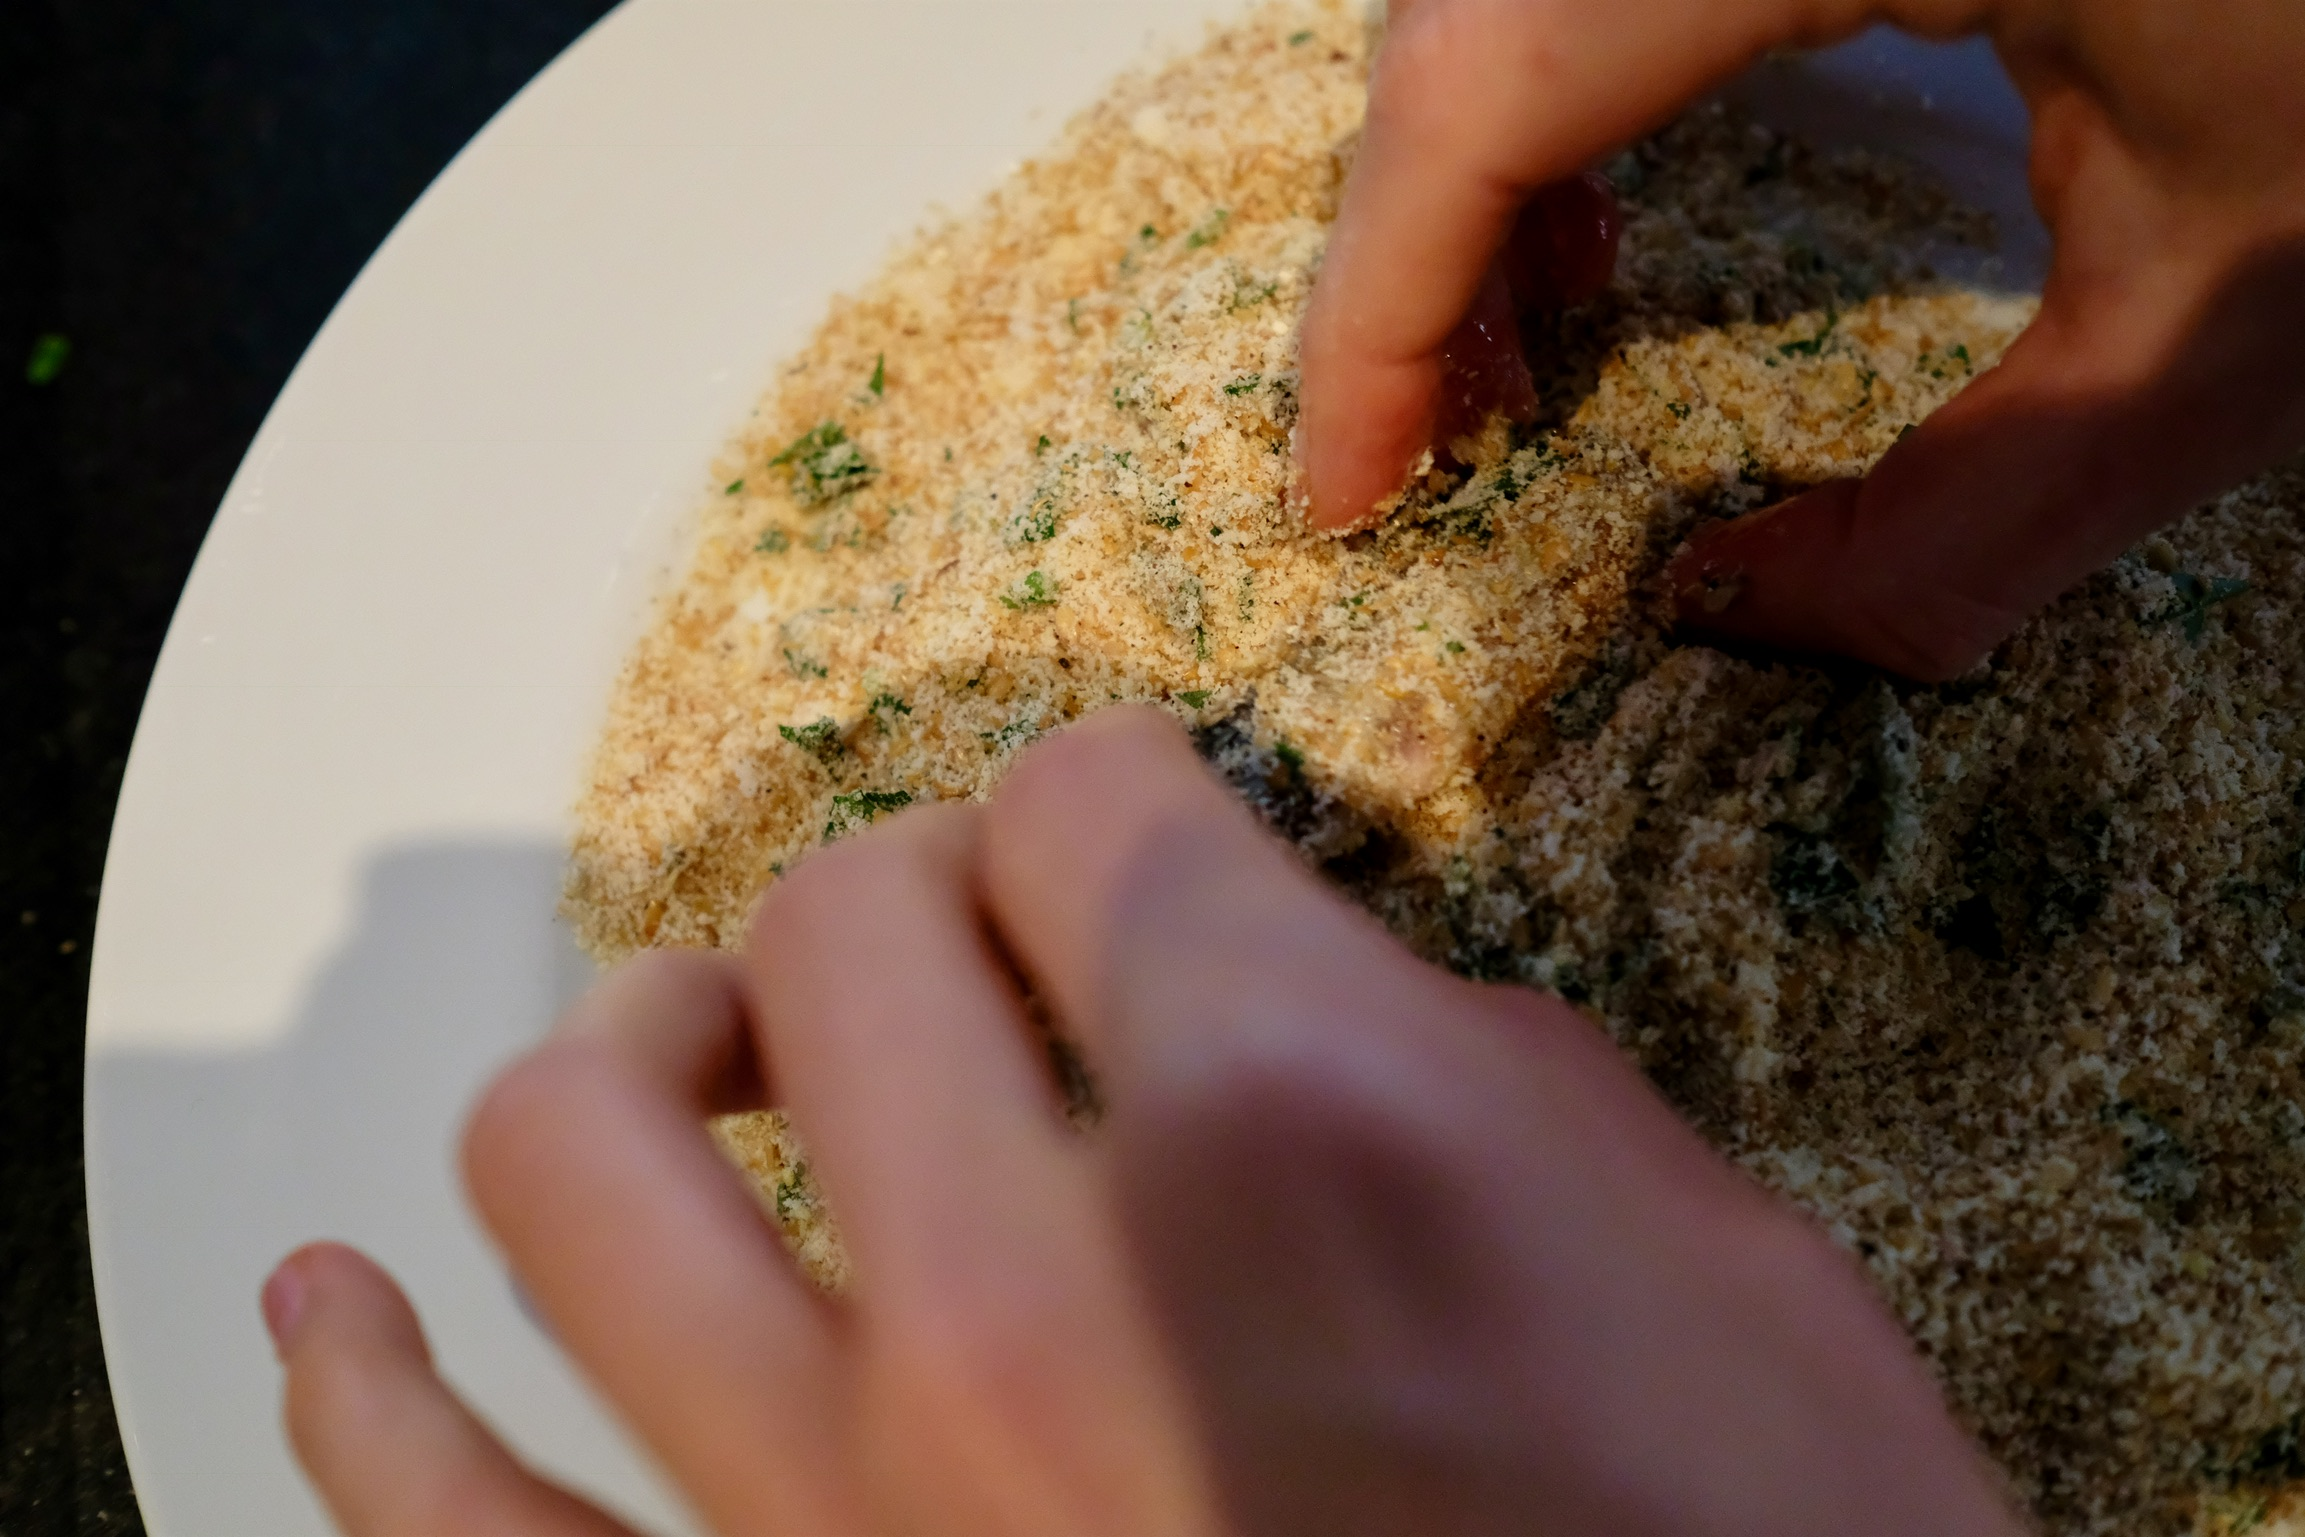 Coating the egg-covered sardine in the breadcrumb mixture